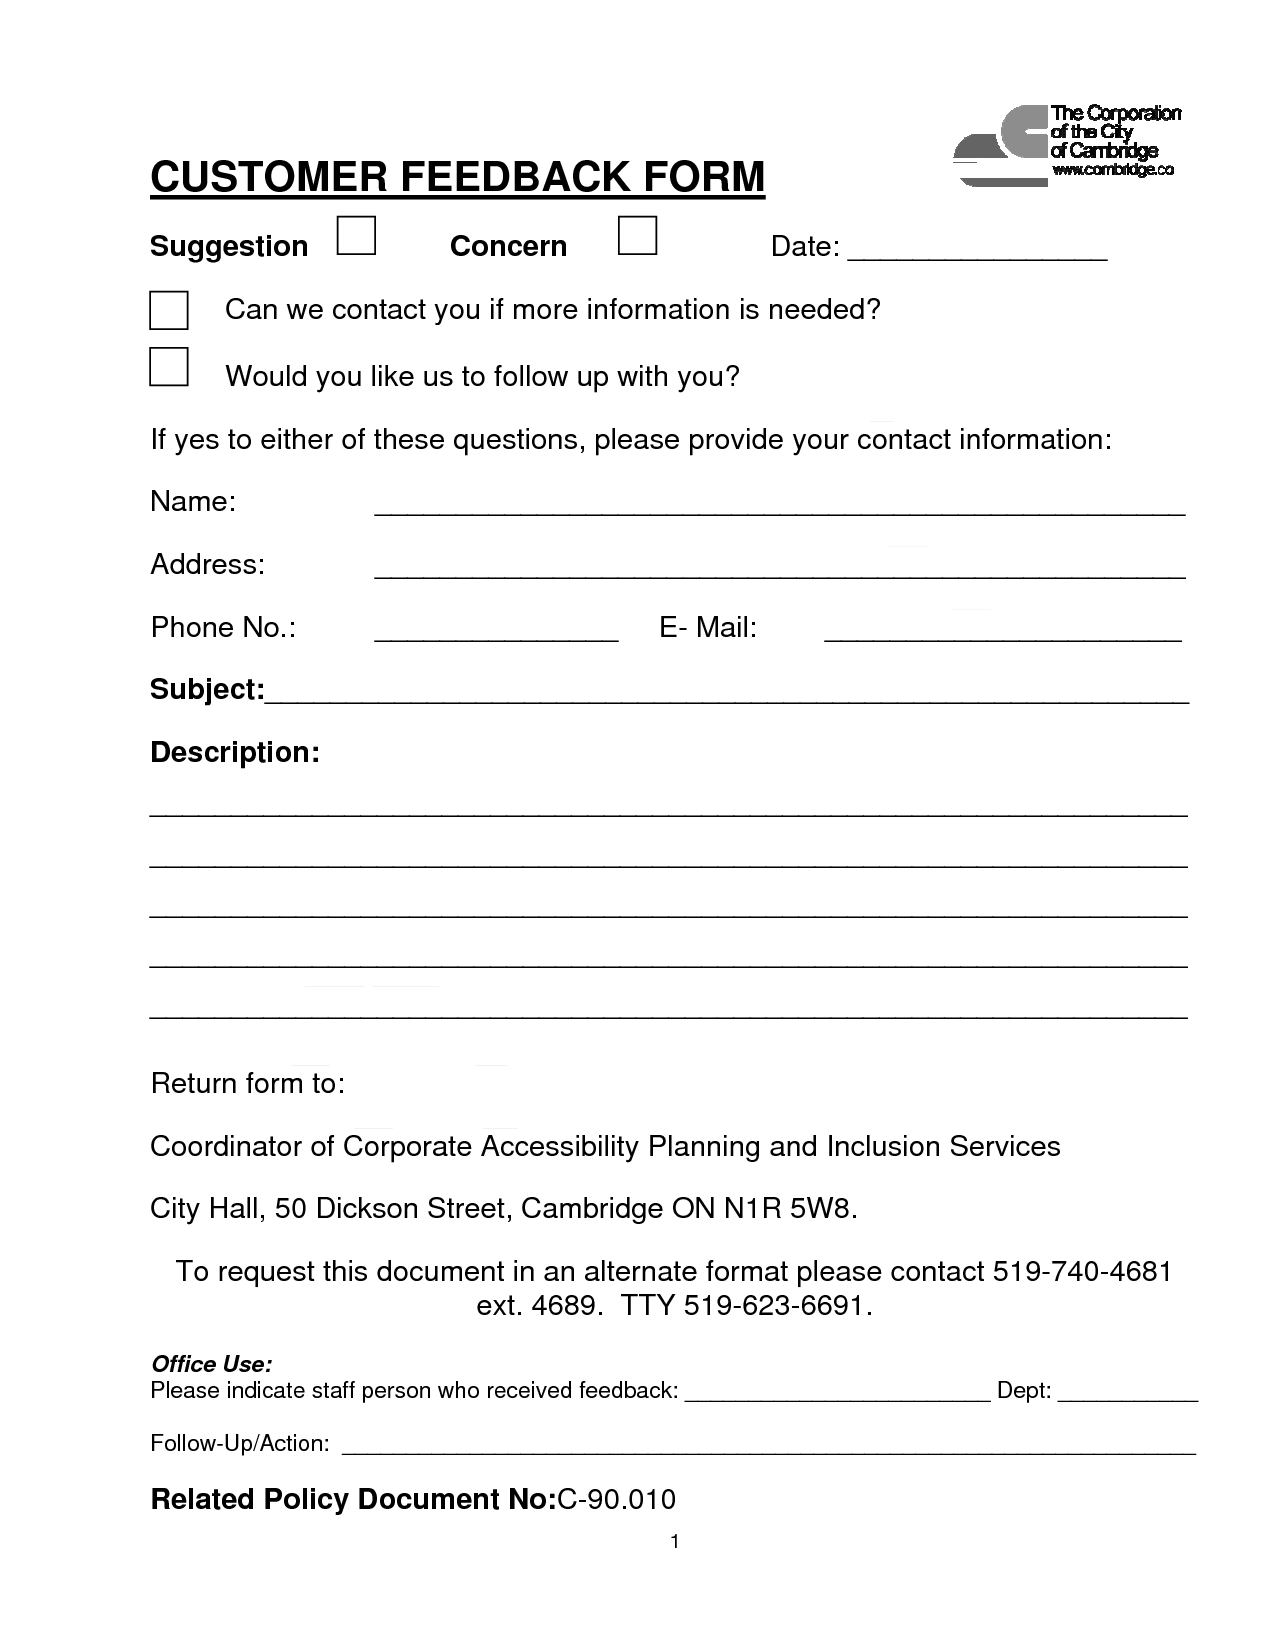 Customer Contact Form CUSTOMER FEEDBACK FORM PDF download Was